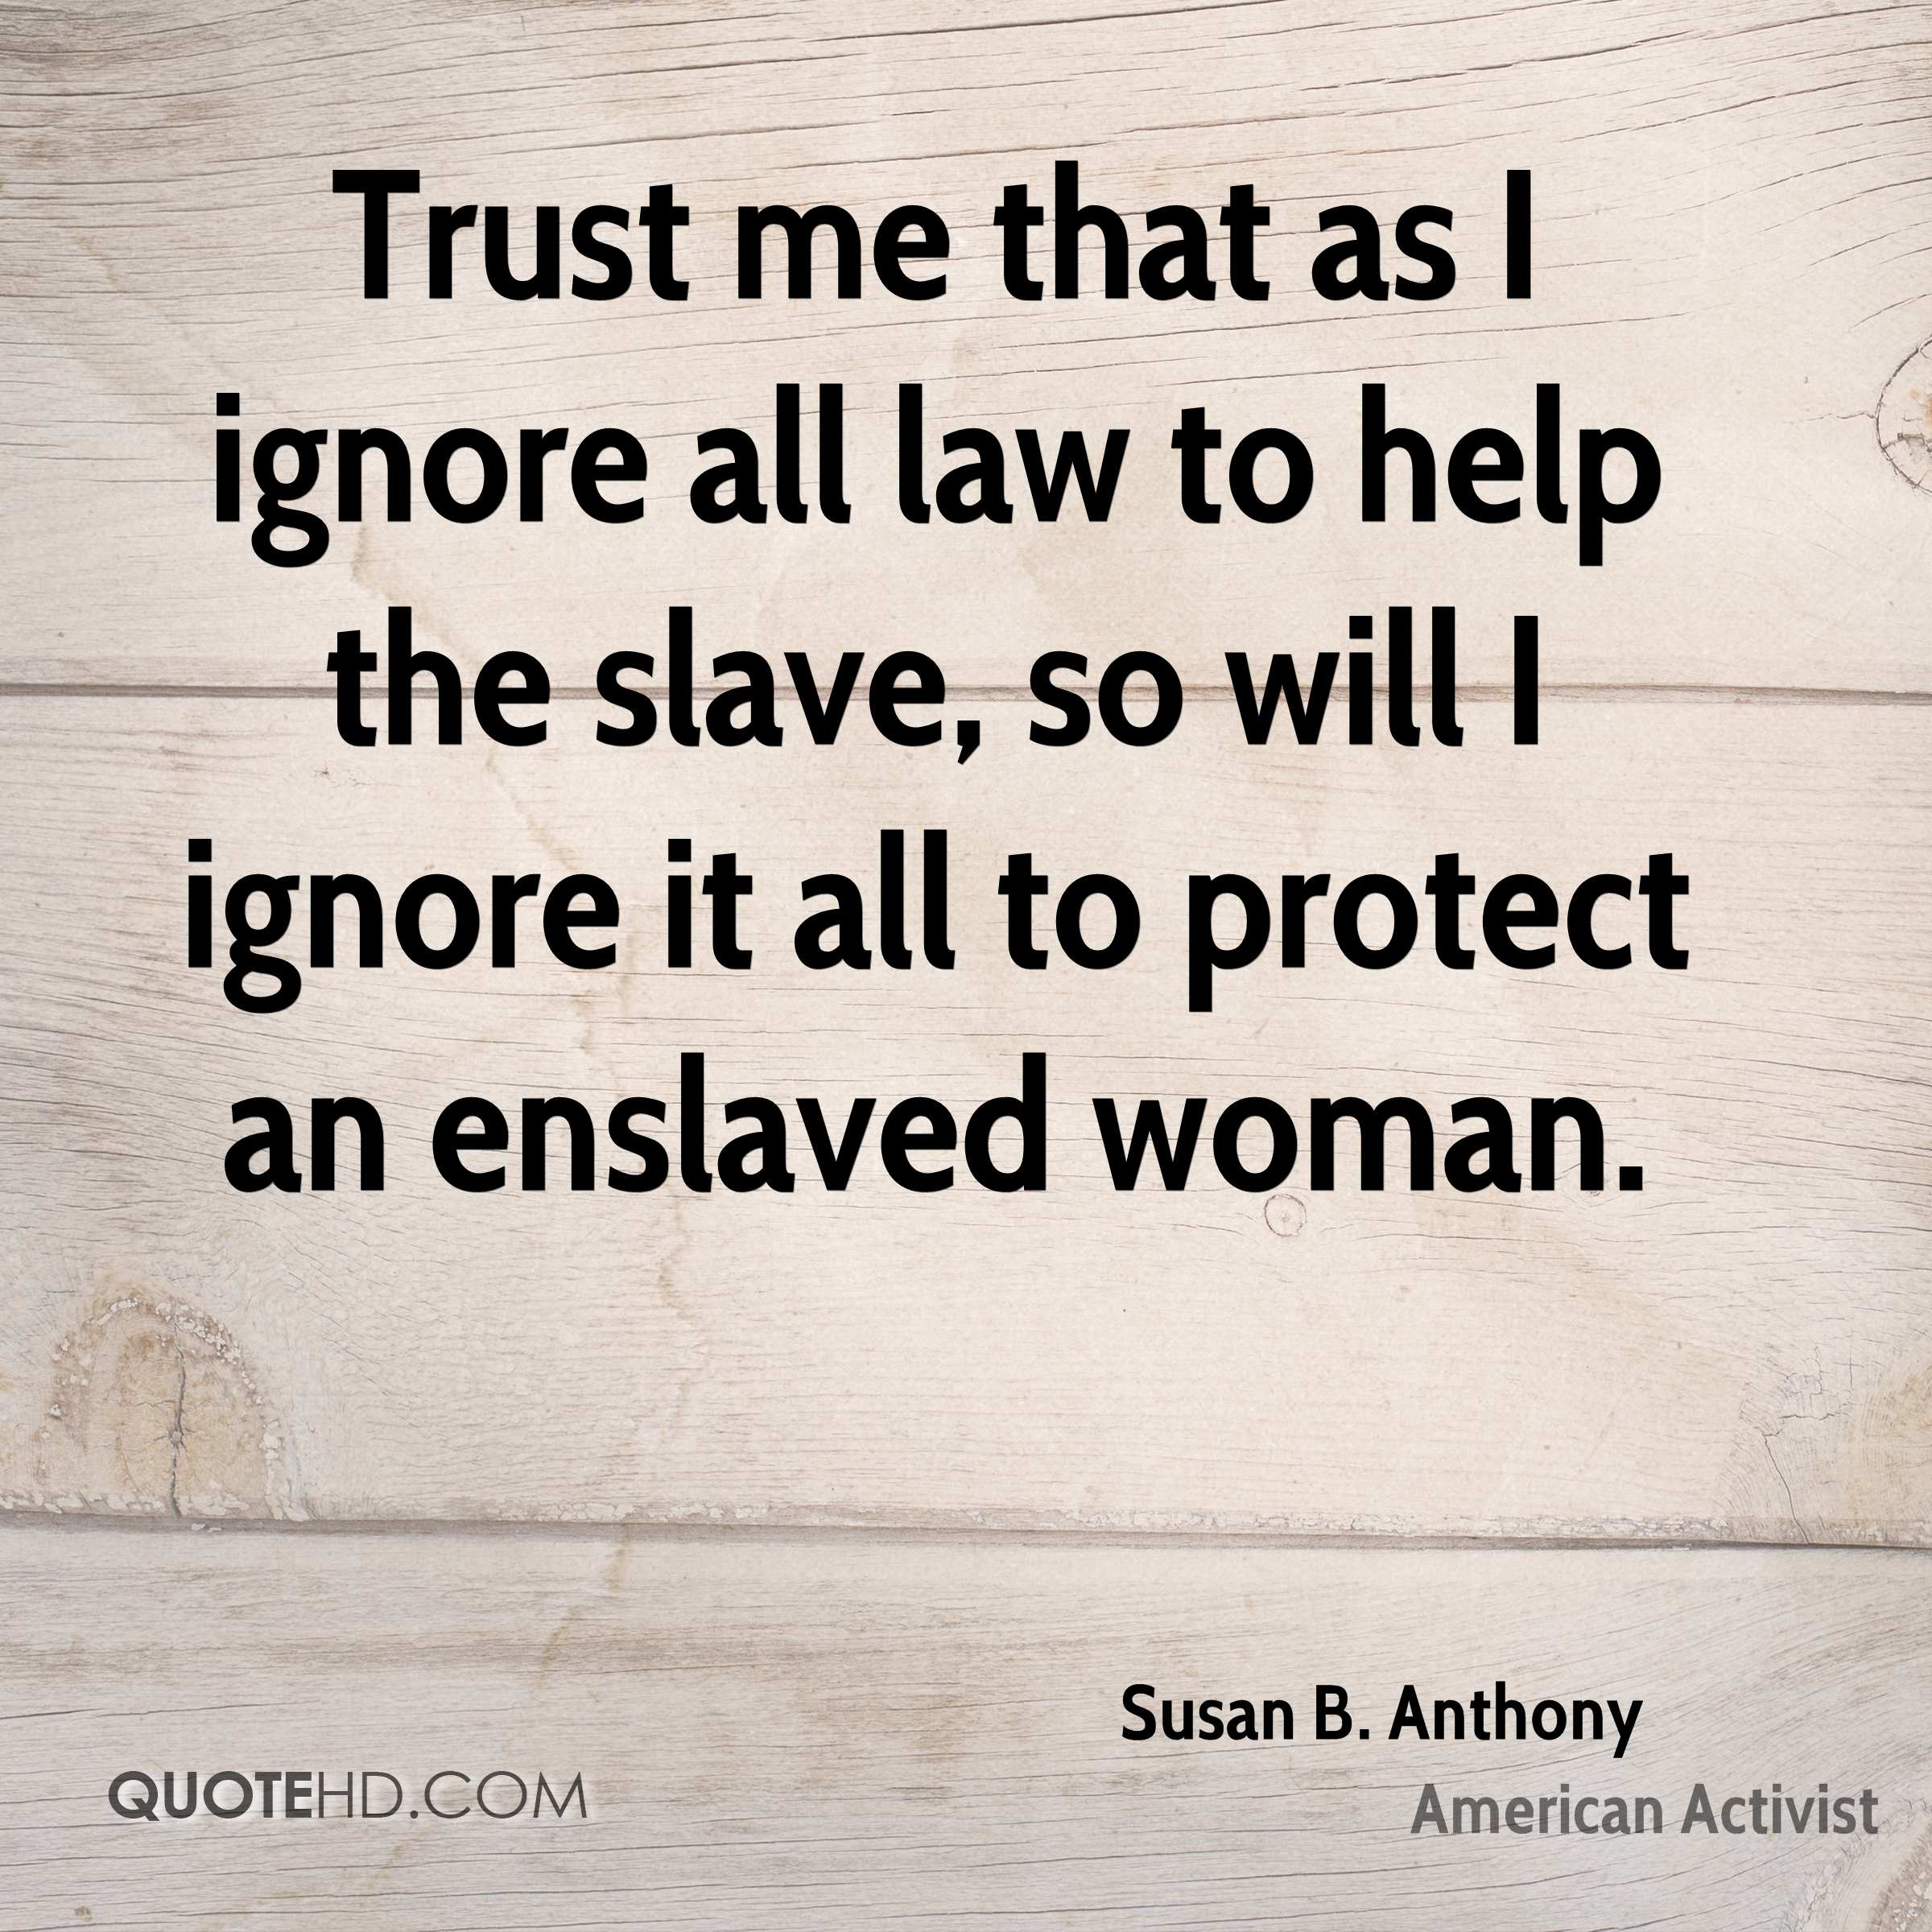 Trust me that as I ignore all law to help the slave, so will I ignore it all to protect an enslaved woman.